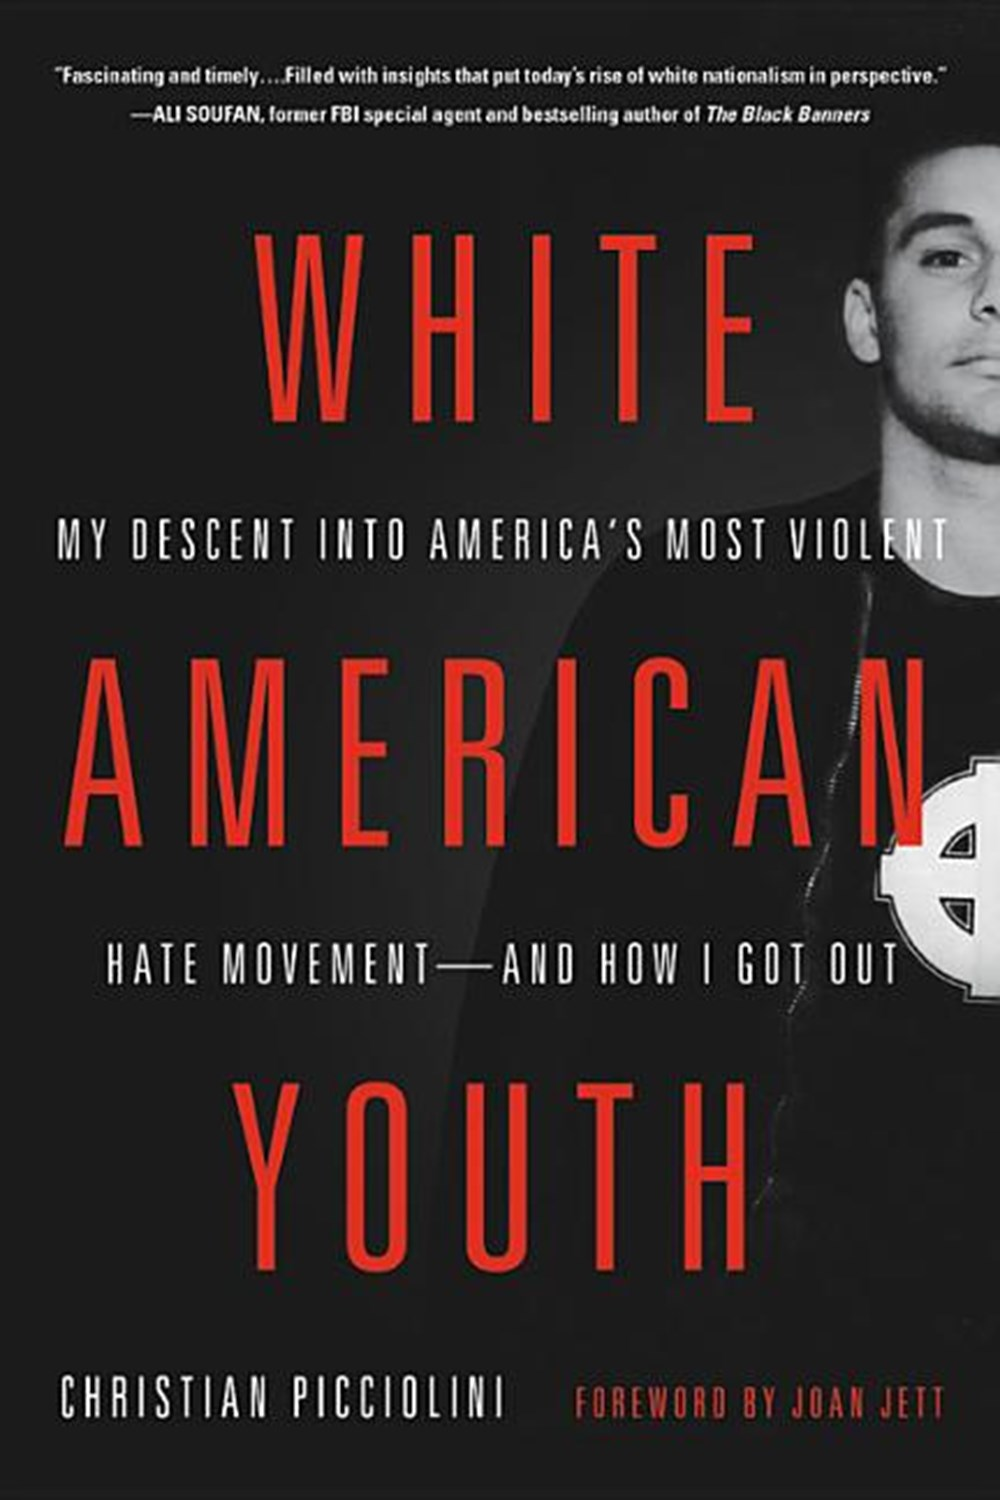 White American Youth My Descent Into America's Most Violent Hate Movement--And How I Got Out